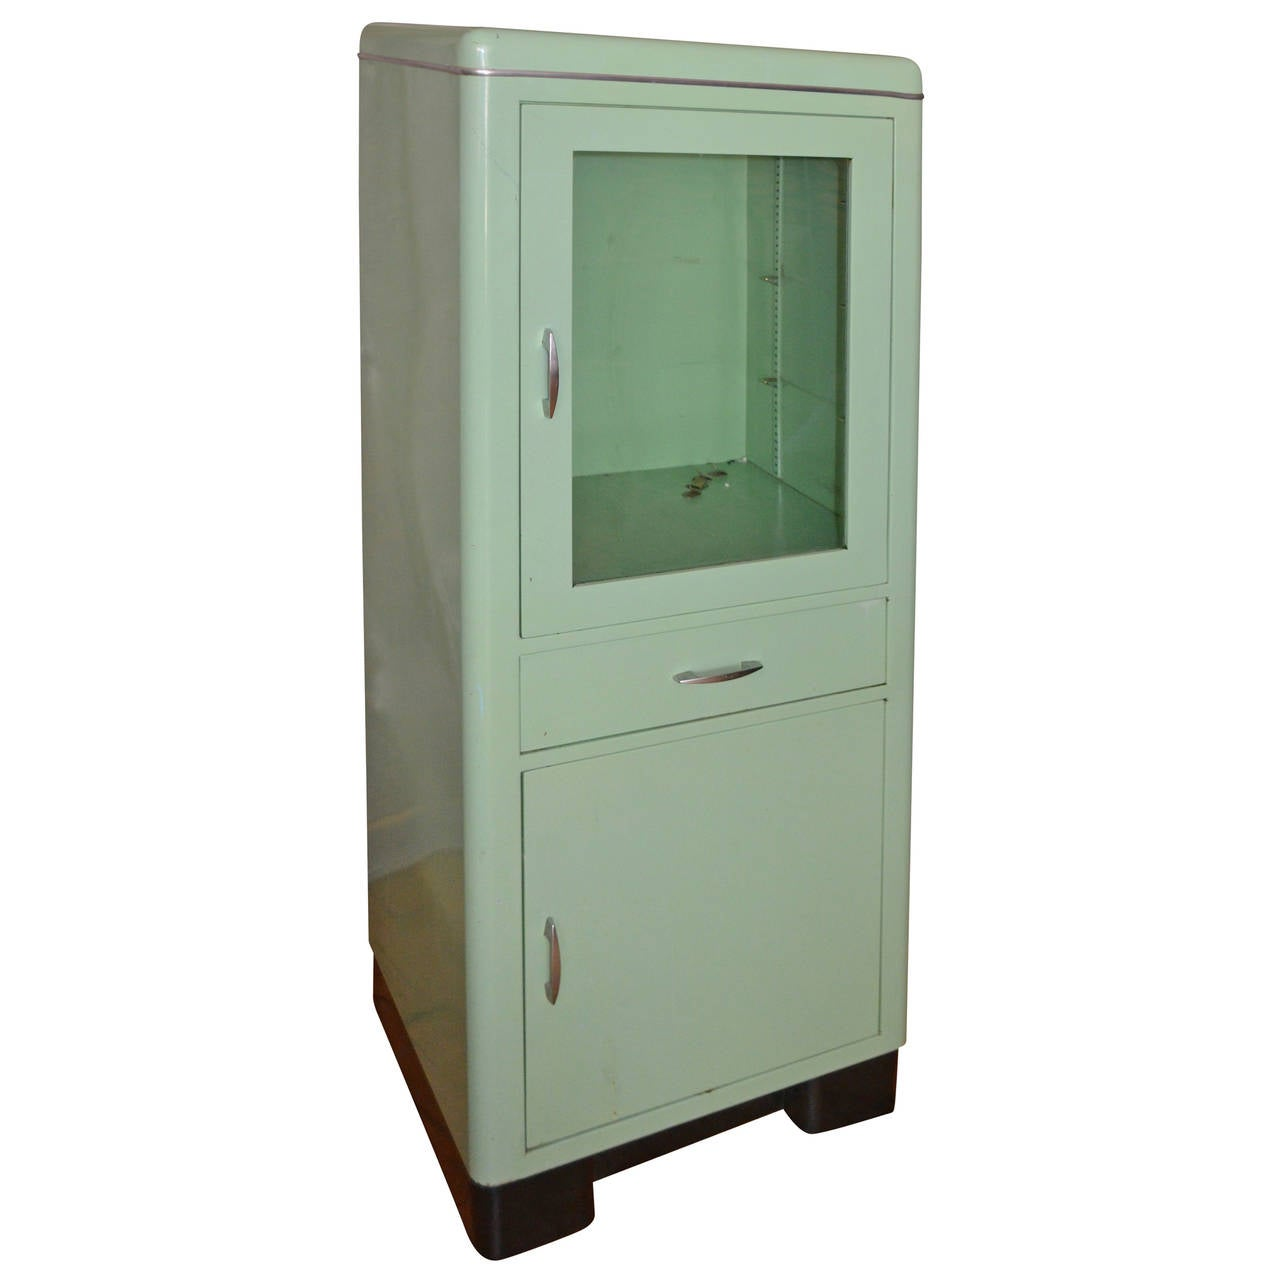 mid century dental medical cabinet in jadeite green enamel with chrome at 1stdibs. Black Bedroom Furniture Sets. Home Design Ideas